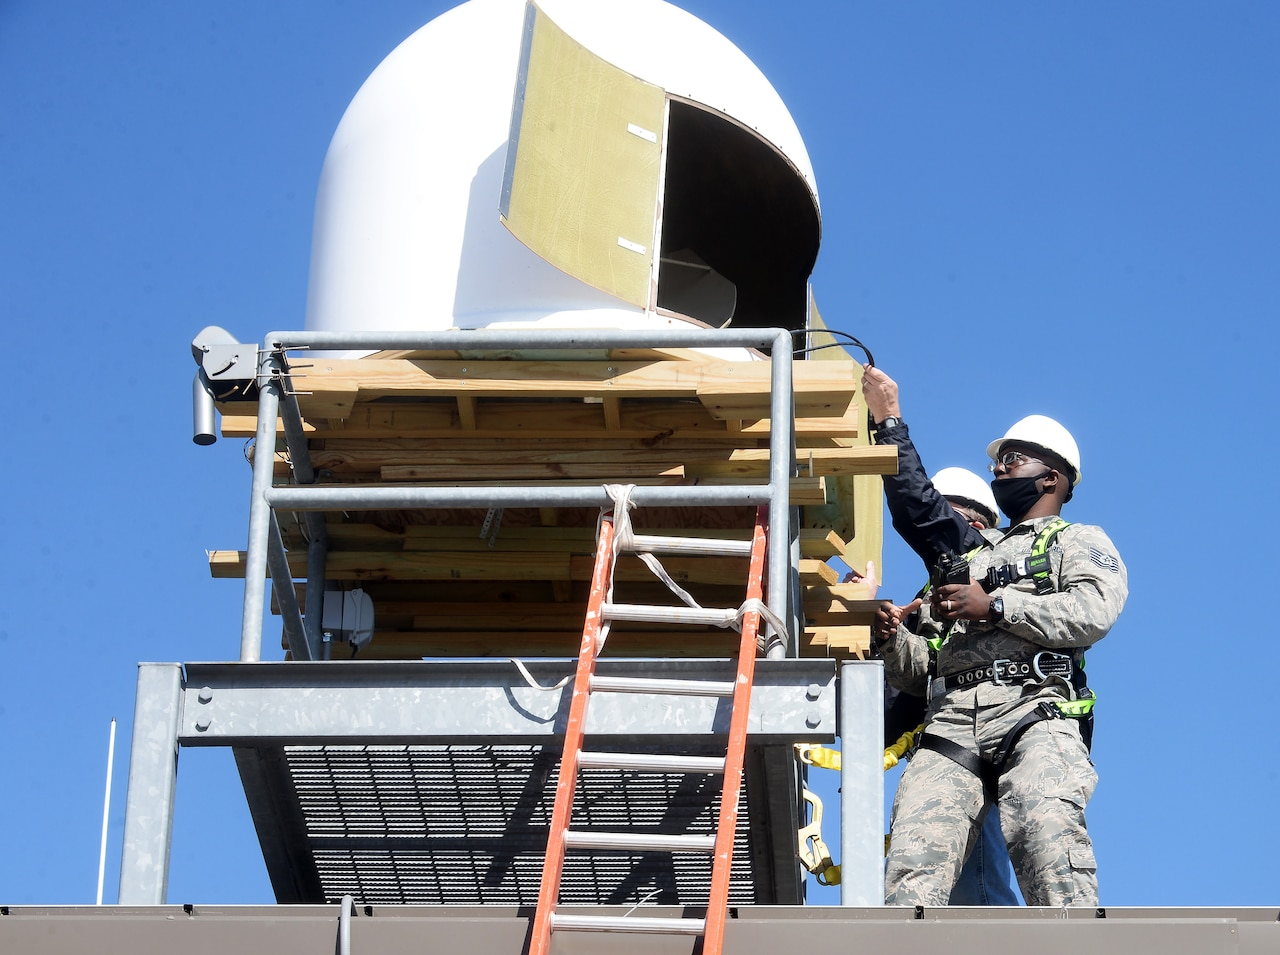 Men work on a satellite terminal.